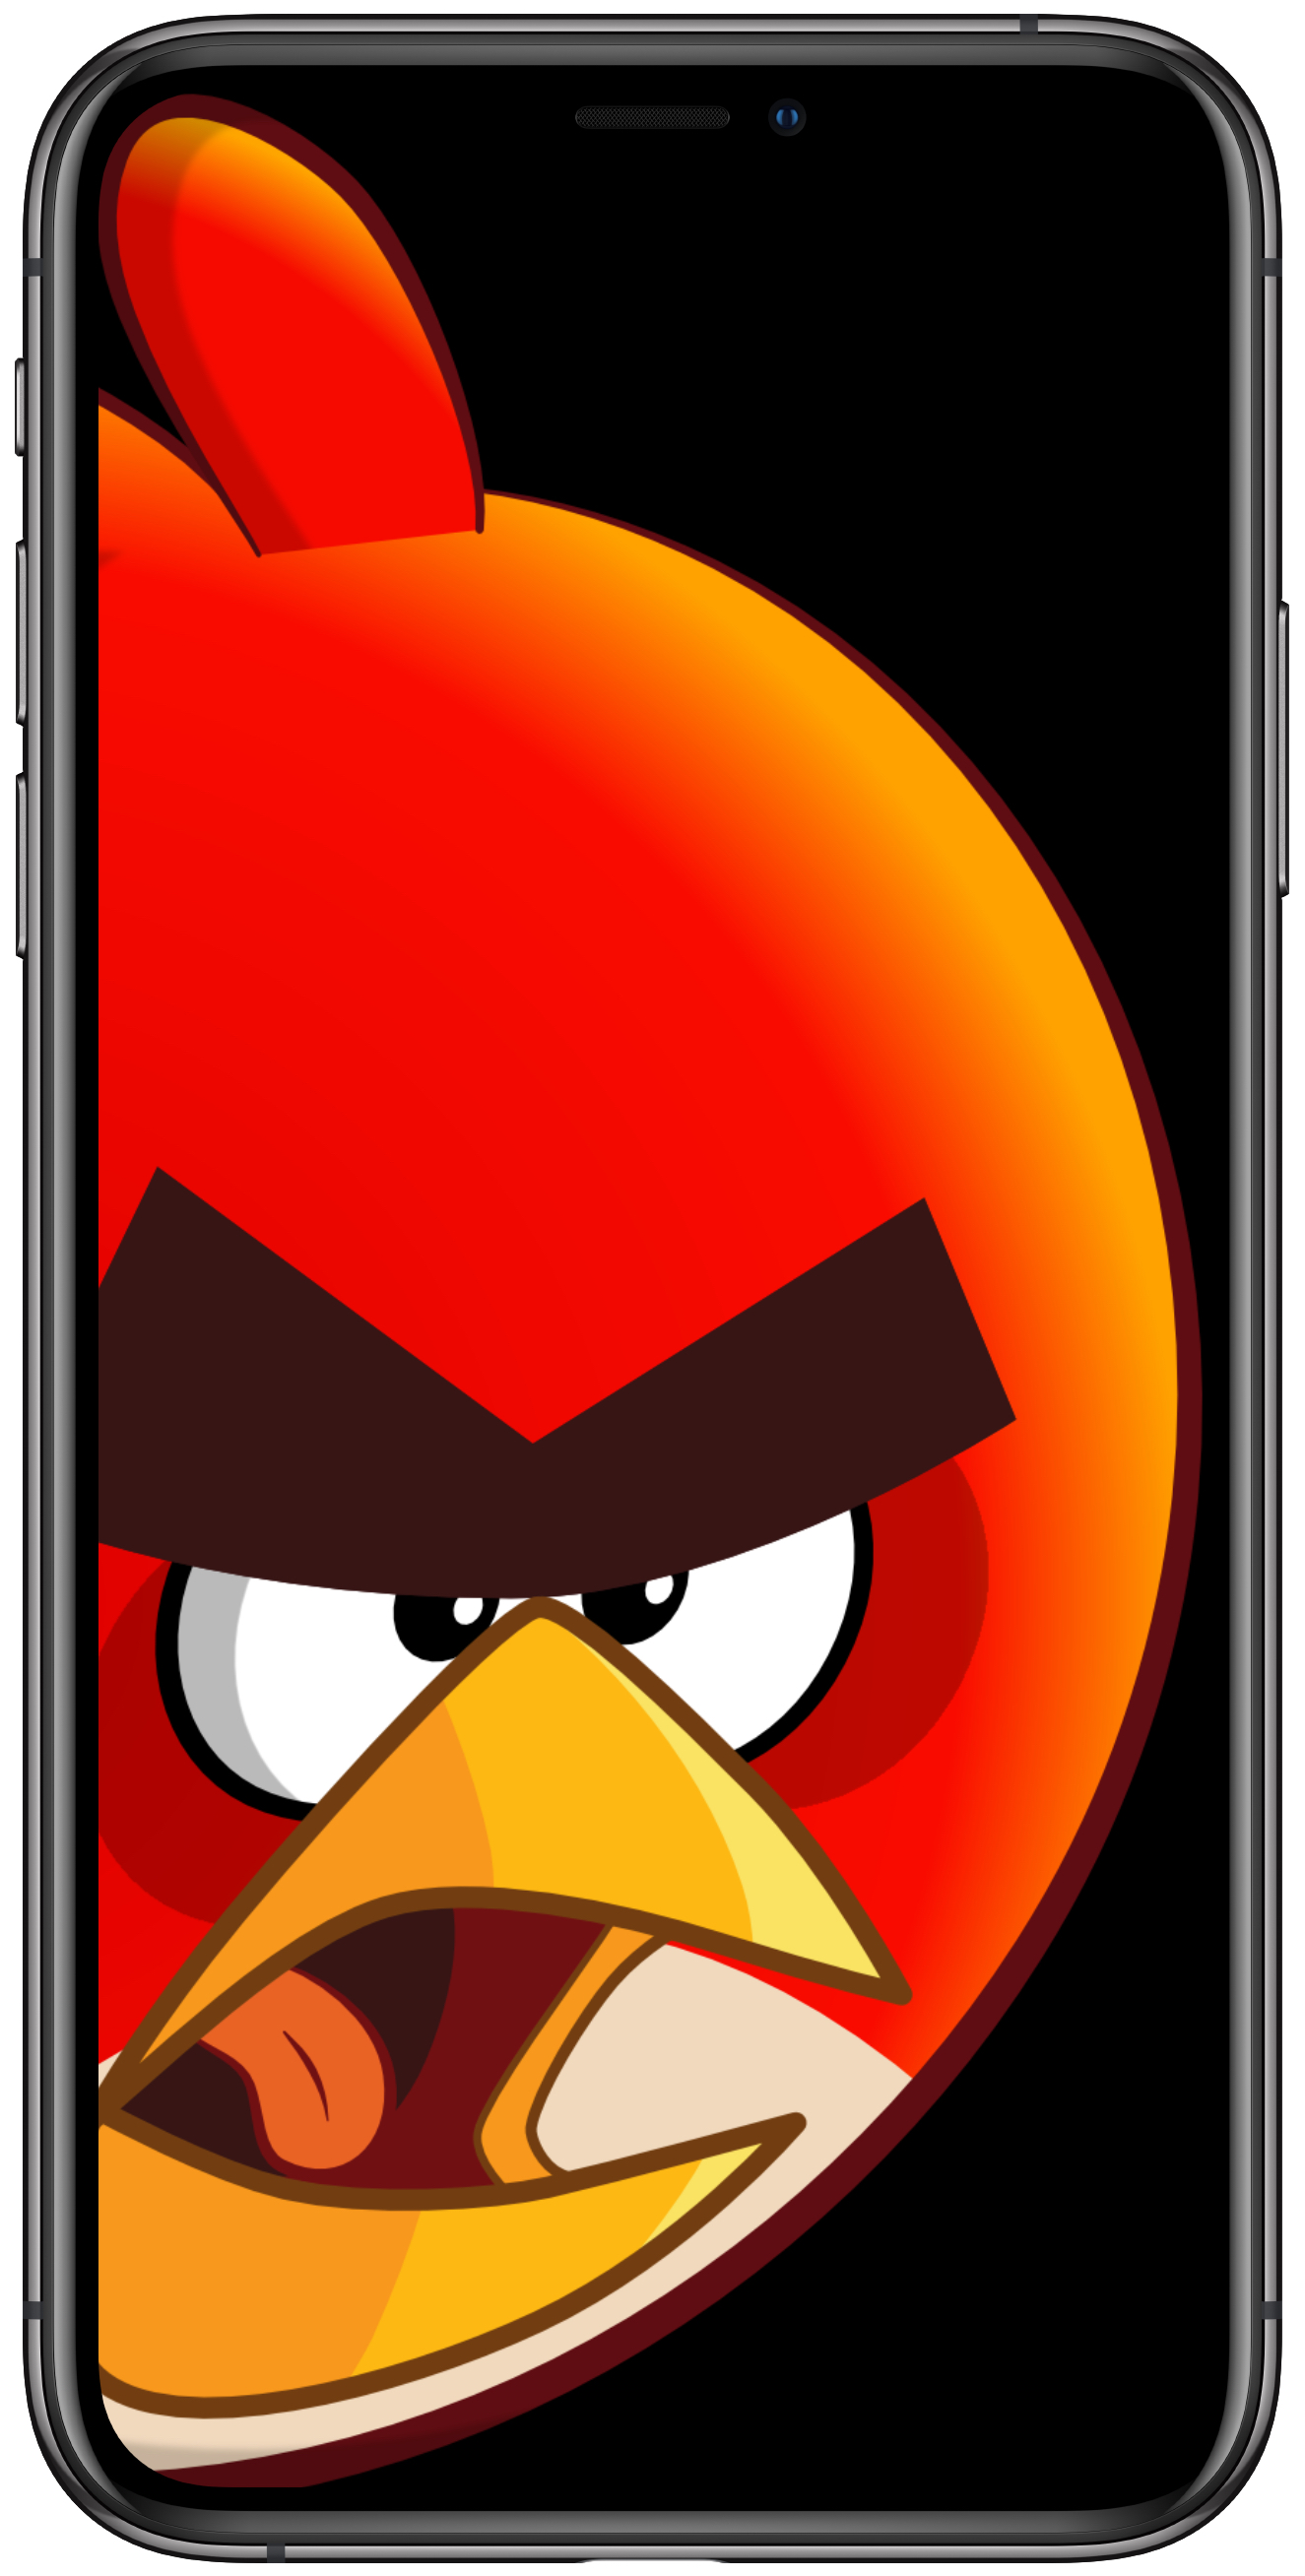 Angry Bird Iphone X 1325x2616 Wallpaper Teahub Io